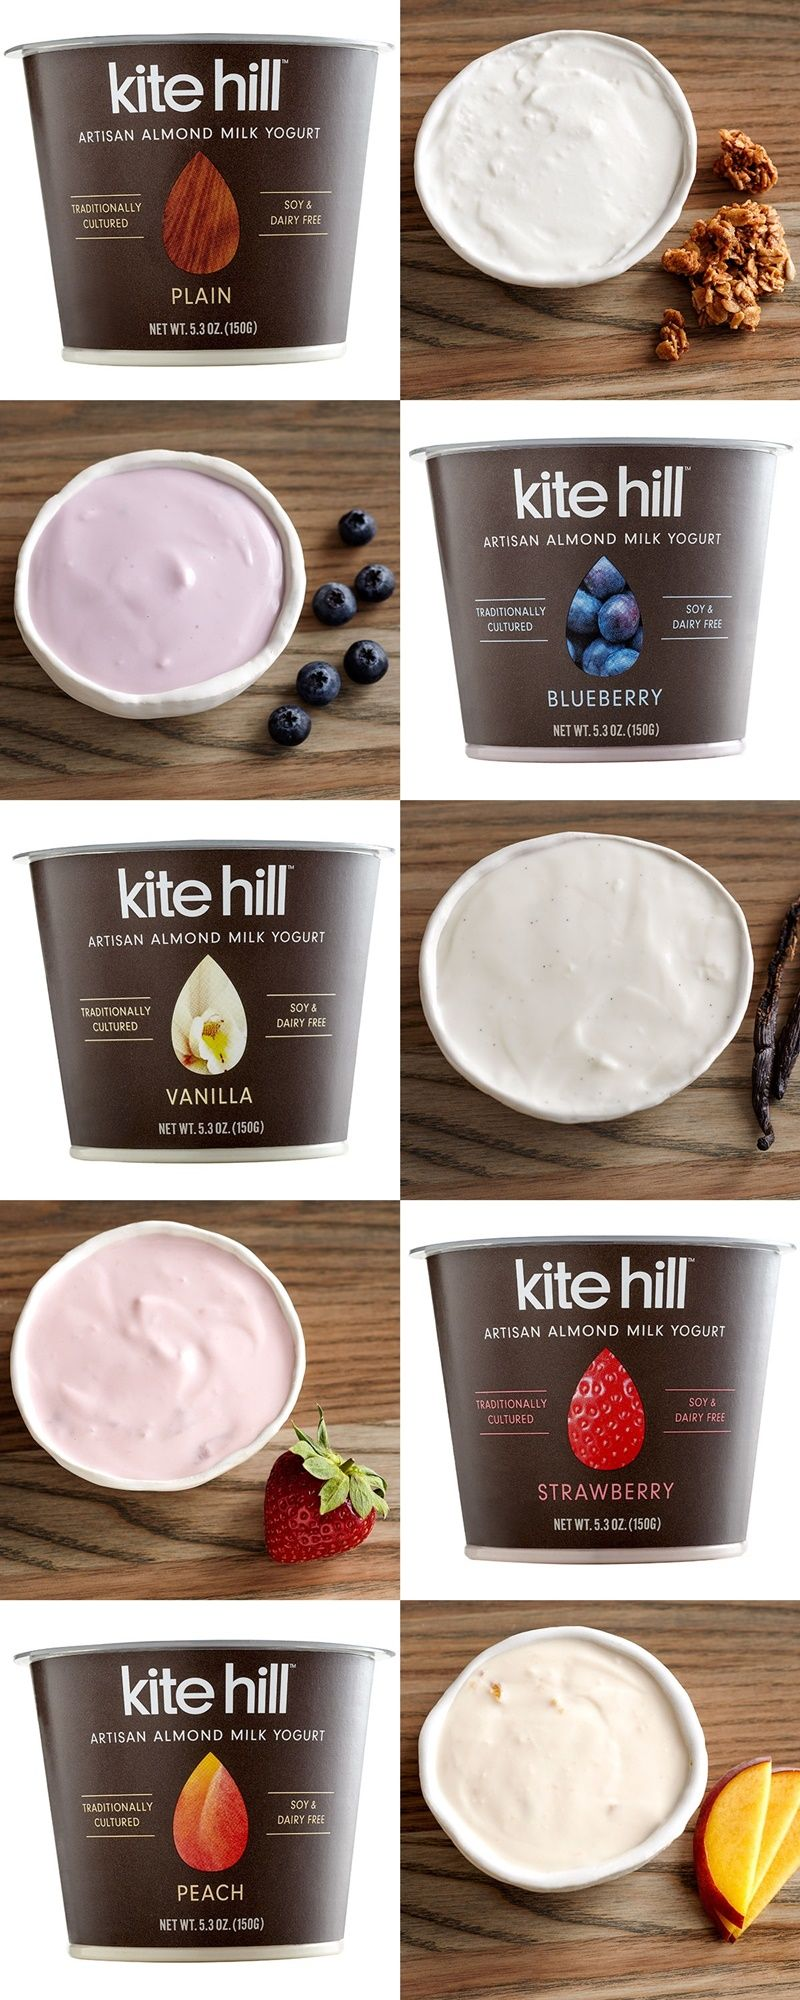 Kite Hill Almond Milk Yogurt Dairy Free Review Dairy Free Yogurt Almond Milk Yogurt Dairy Free Recipes